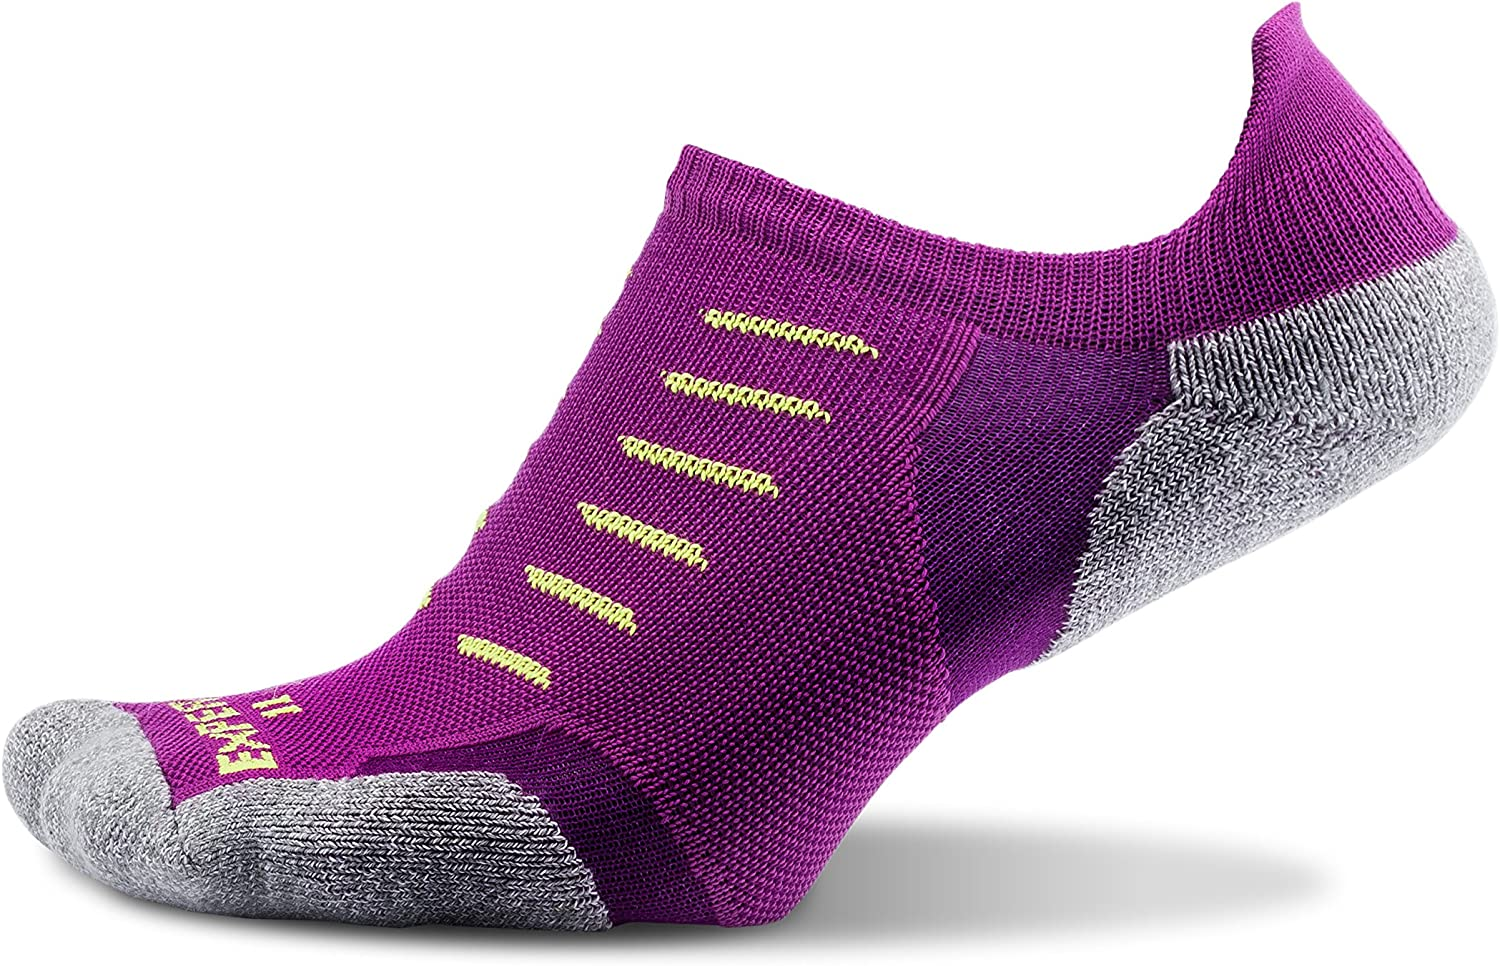 Thorlo Experia Chaussettes Mixte Adulte FR : S Very Berry Taille Fabricant : S